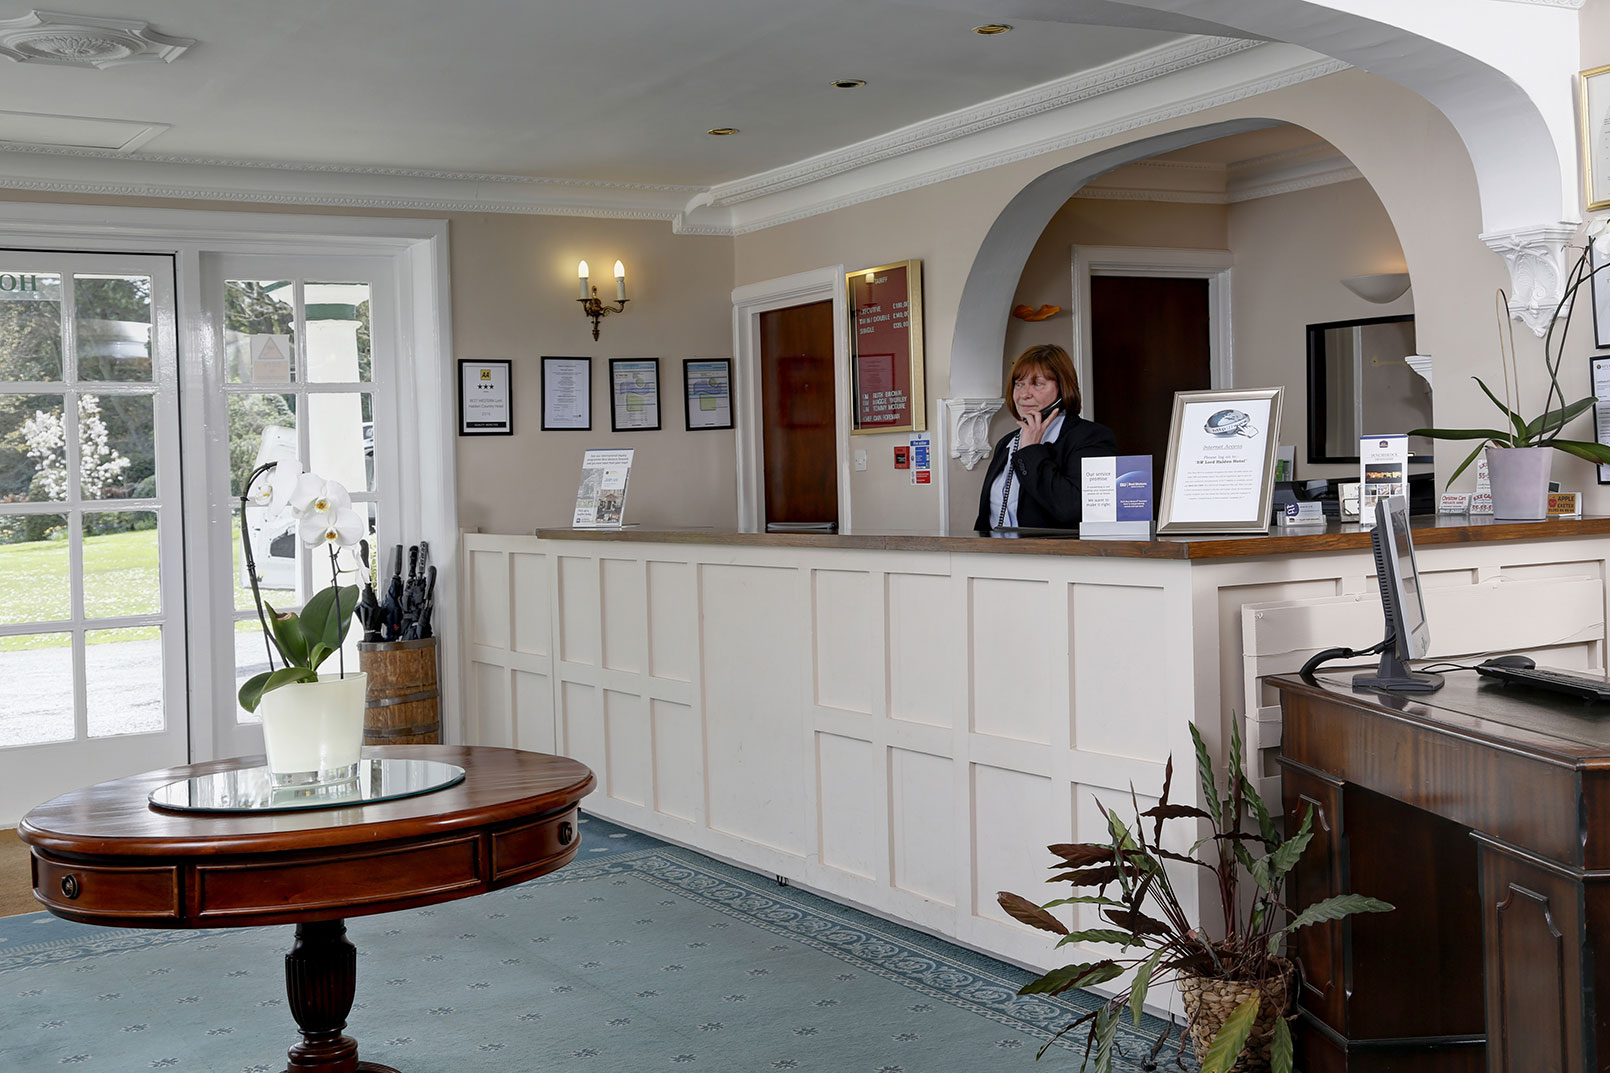 Best Western Exeter Lord Haldon Country Hotel - Country house hotel interiors